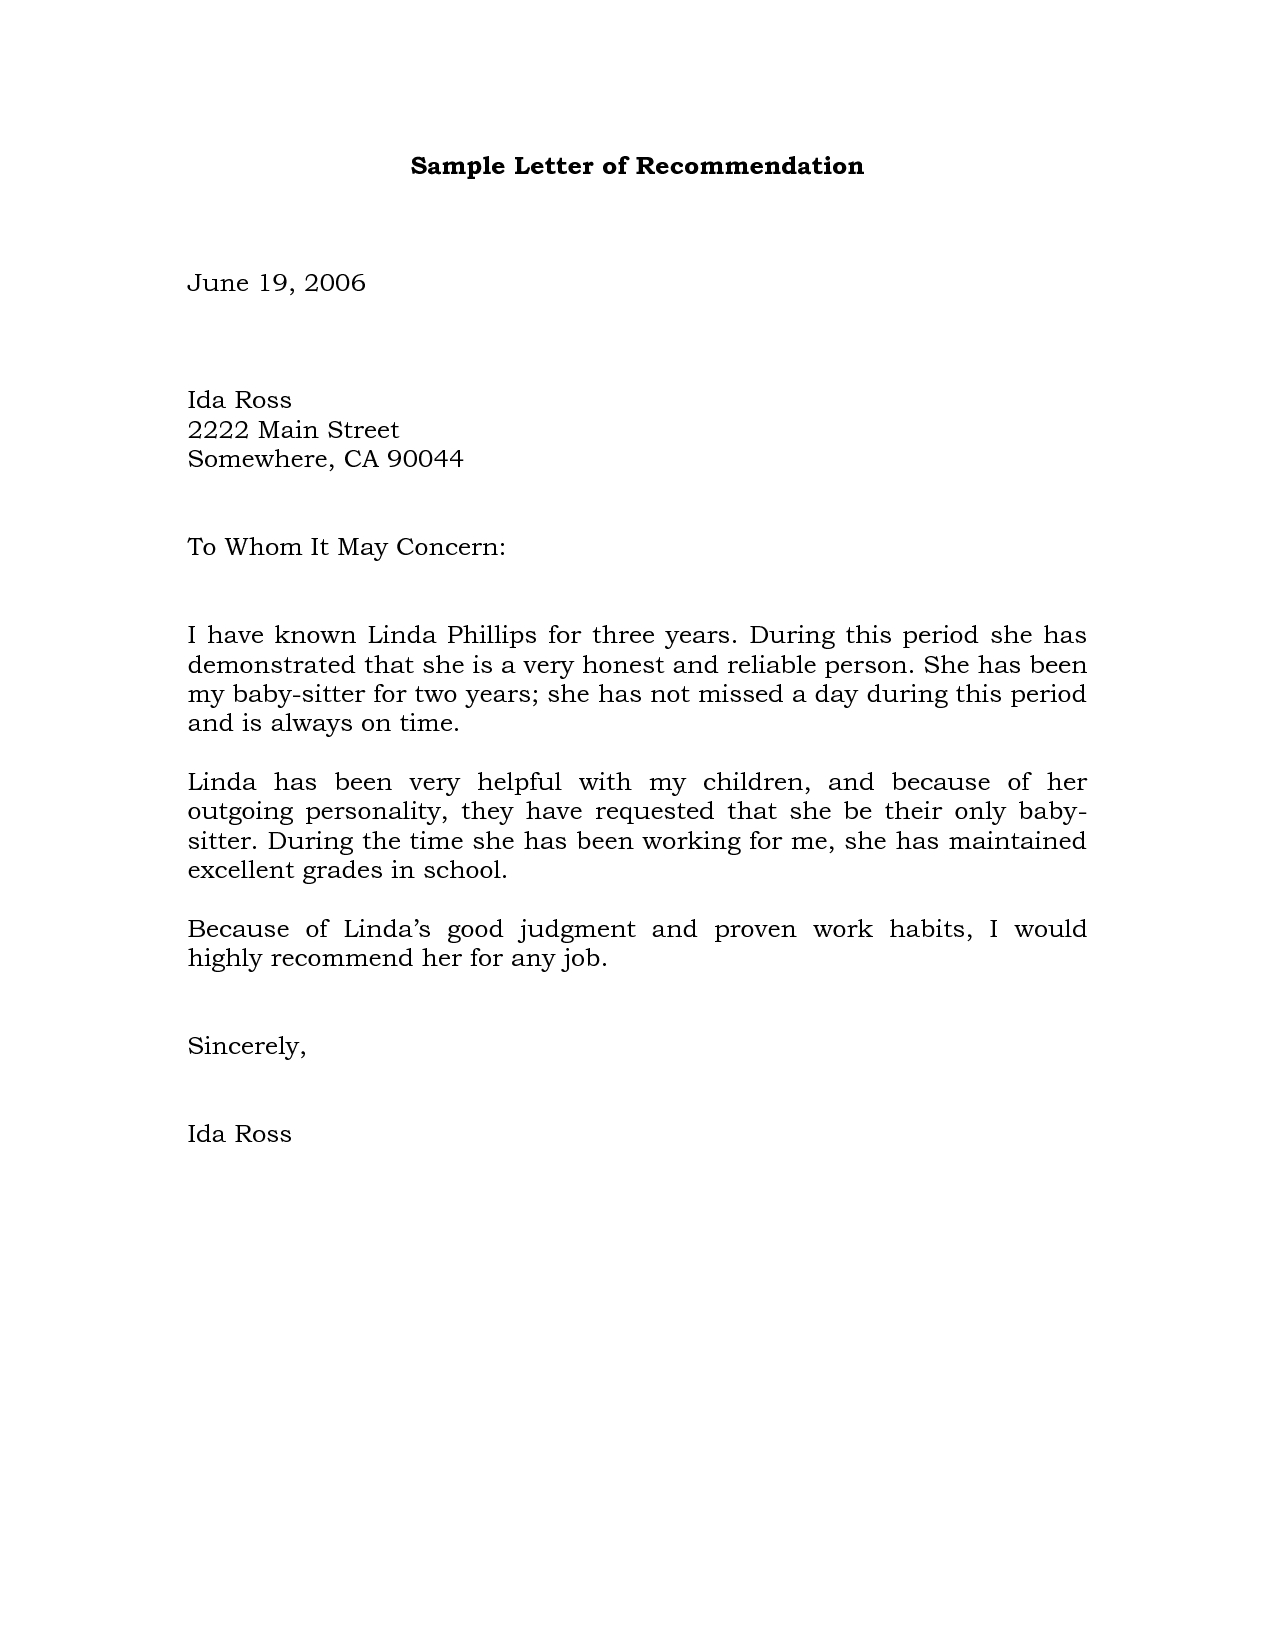 Sales associate Cover Letter Template - Sample Re Mendation Letter Example Projects to Try